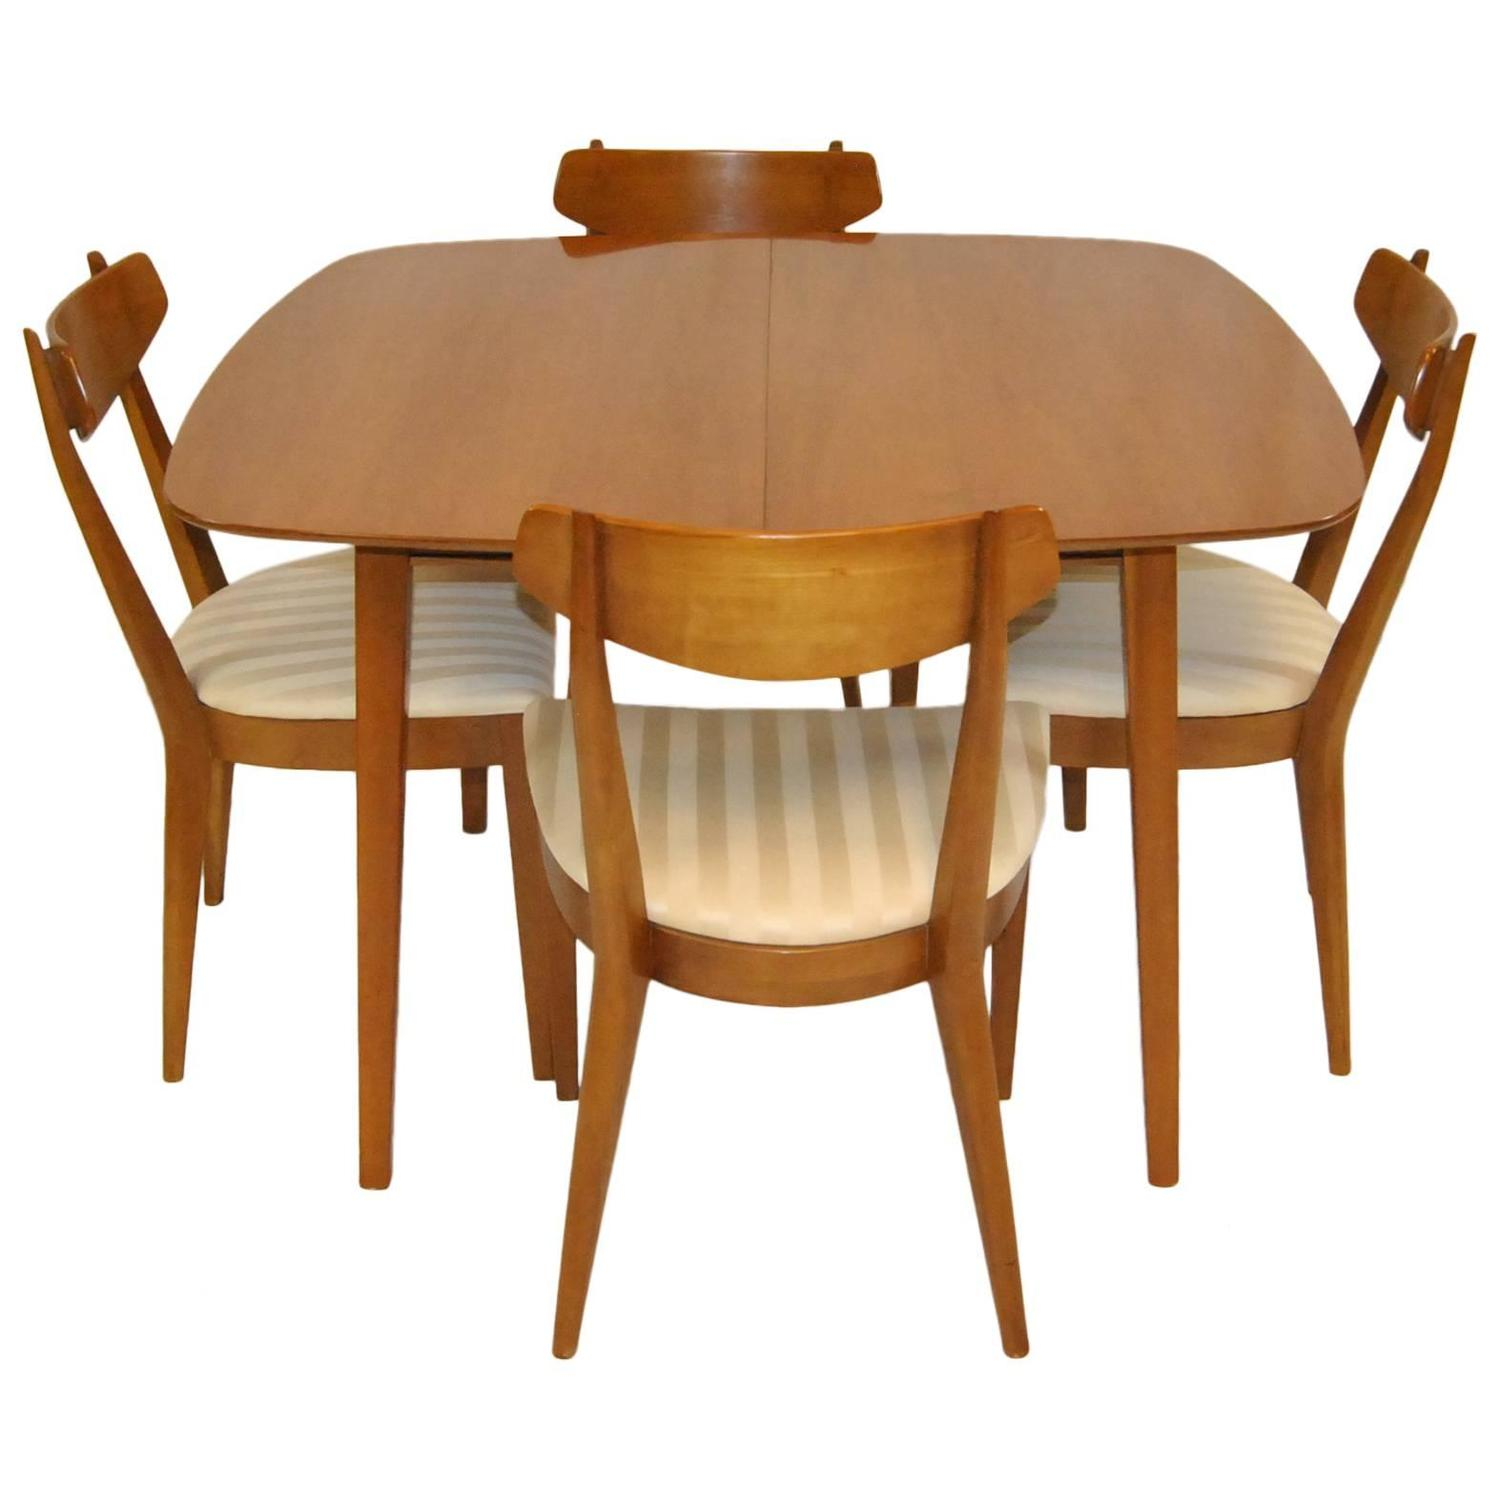 Mid century modern dining set by kipp stewart for drexel sun coast collection for sale at 1stdibs - Contemporary dining room sets furniture ...